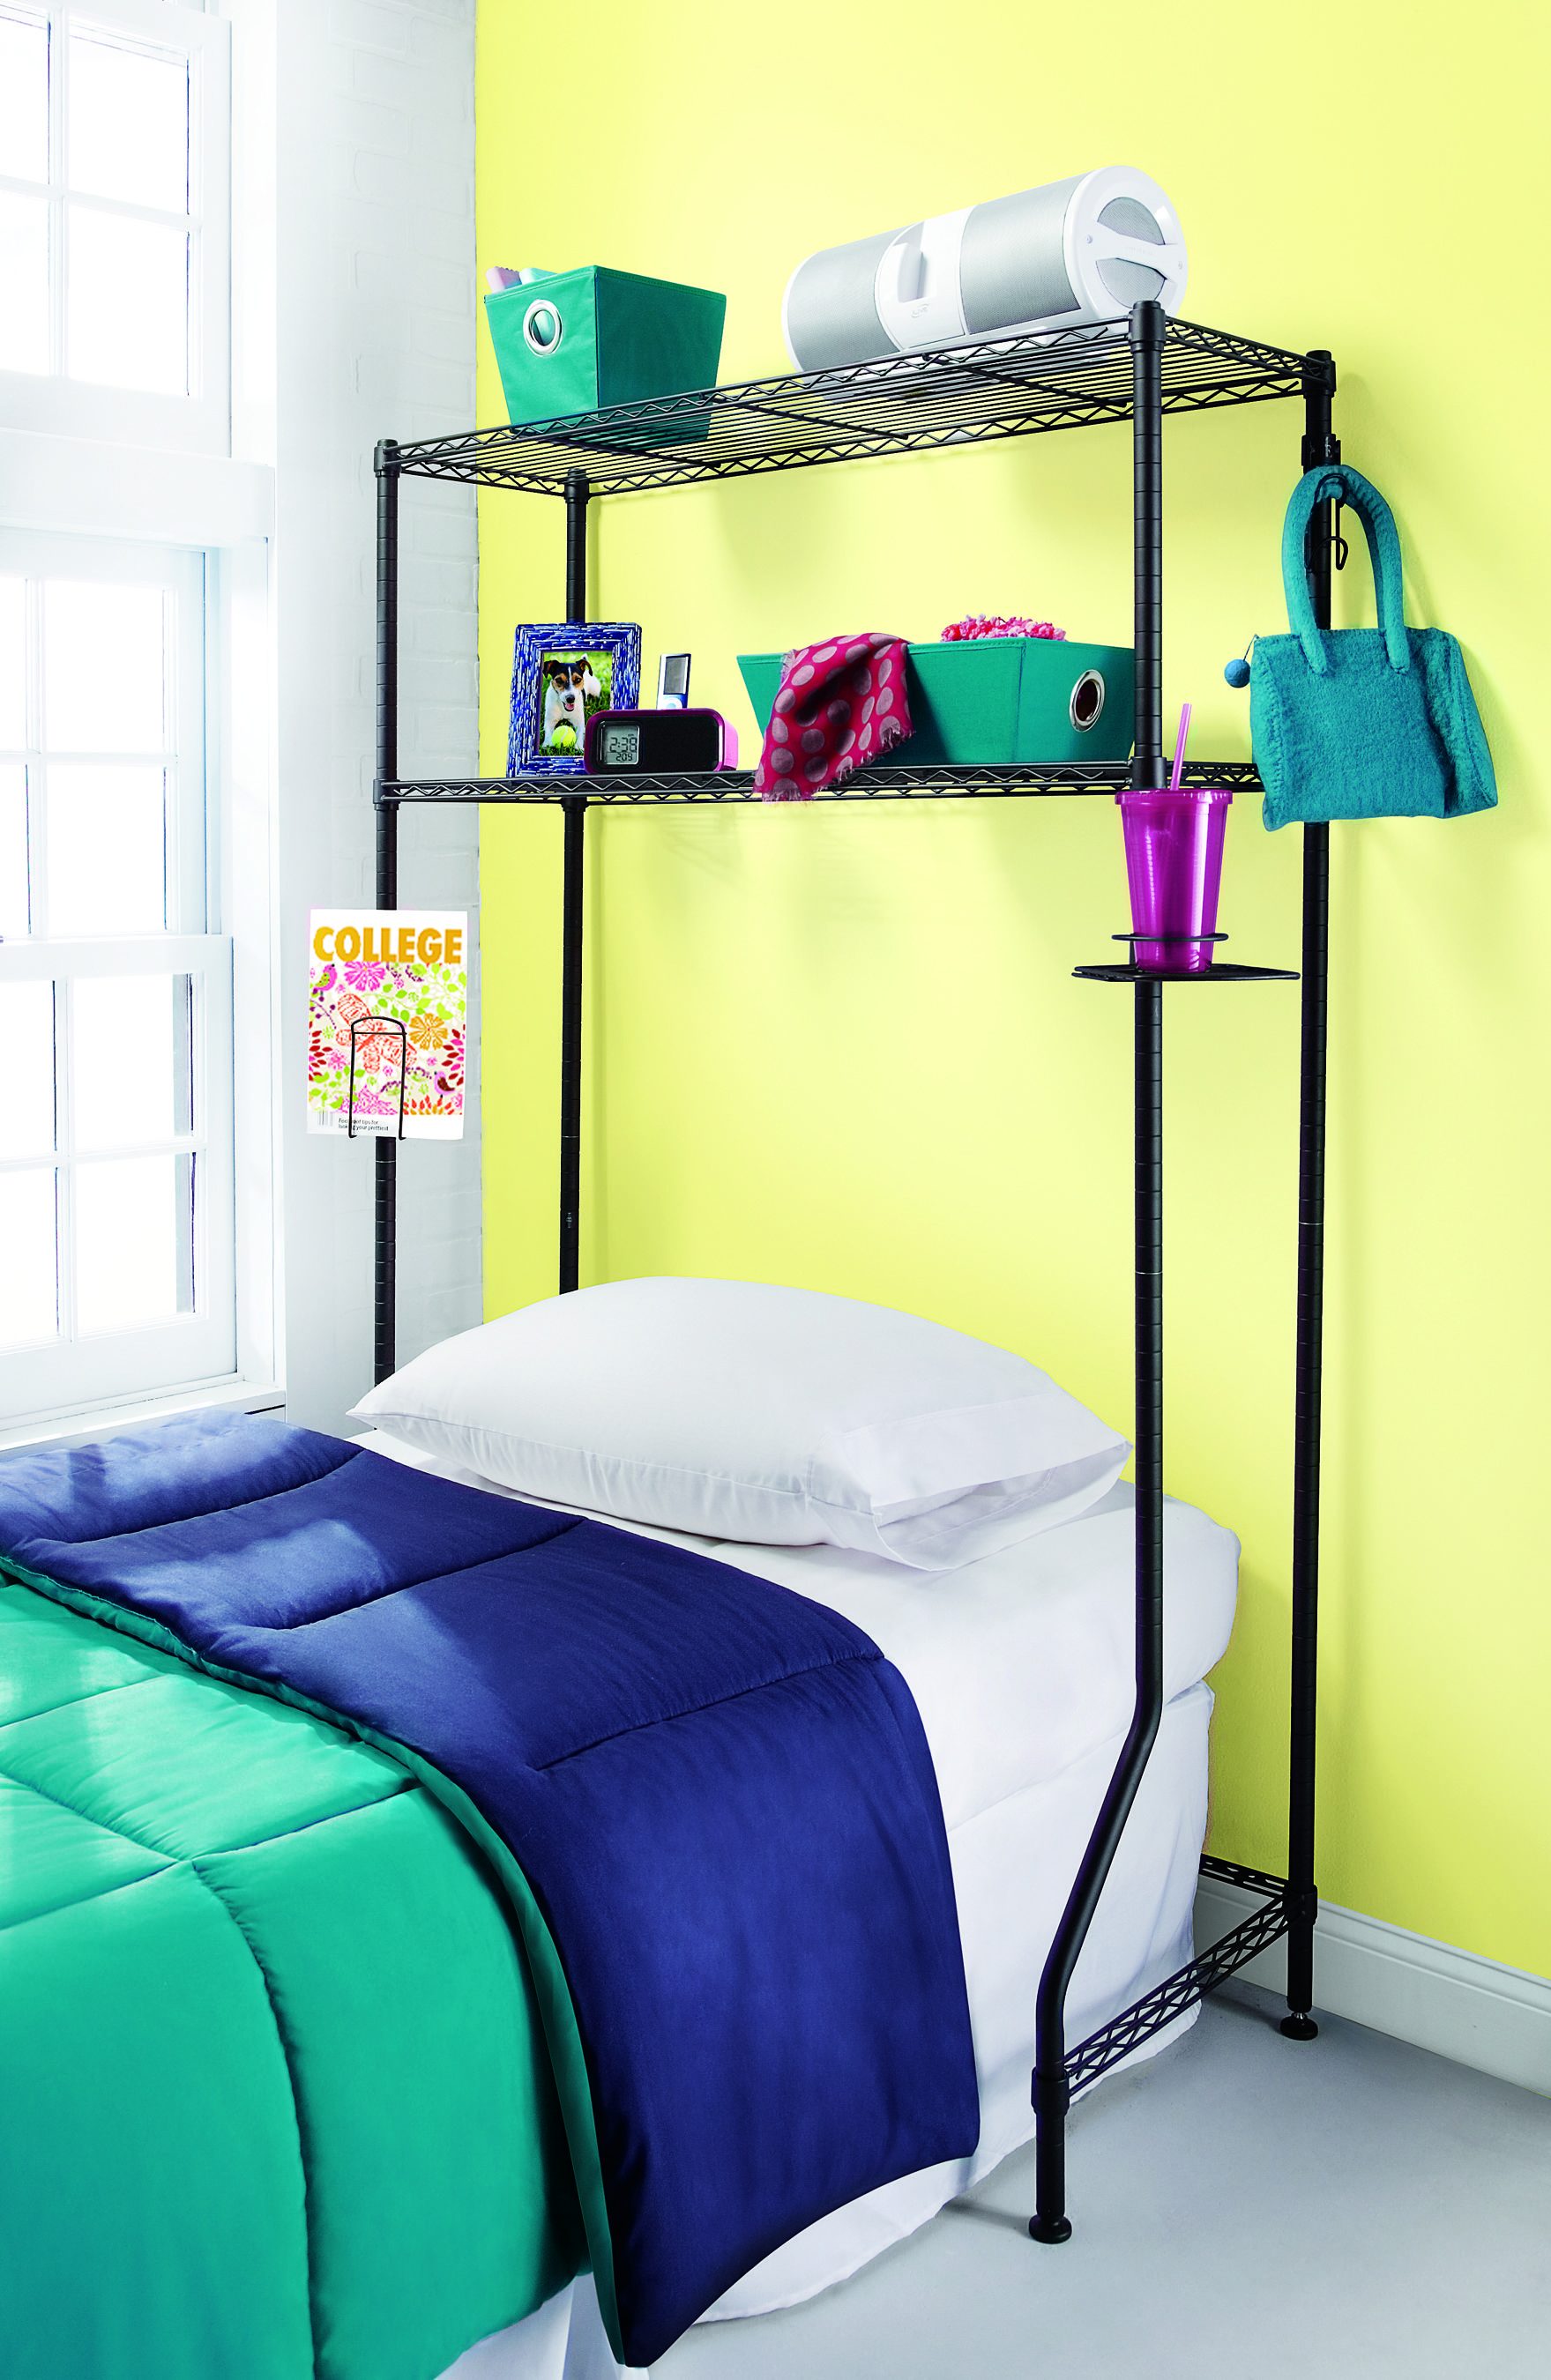 Storage for over the bed desk or dresser Creates storage space even where it